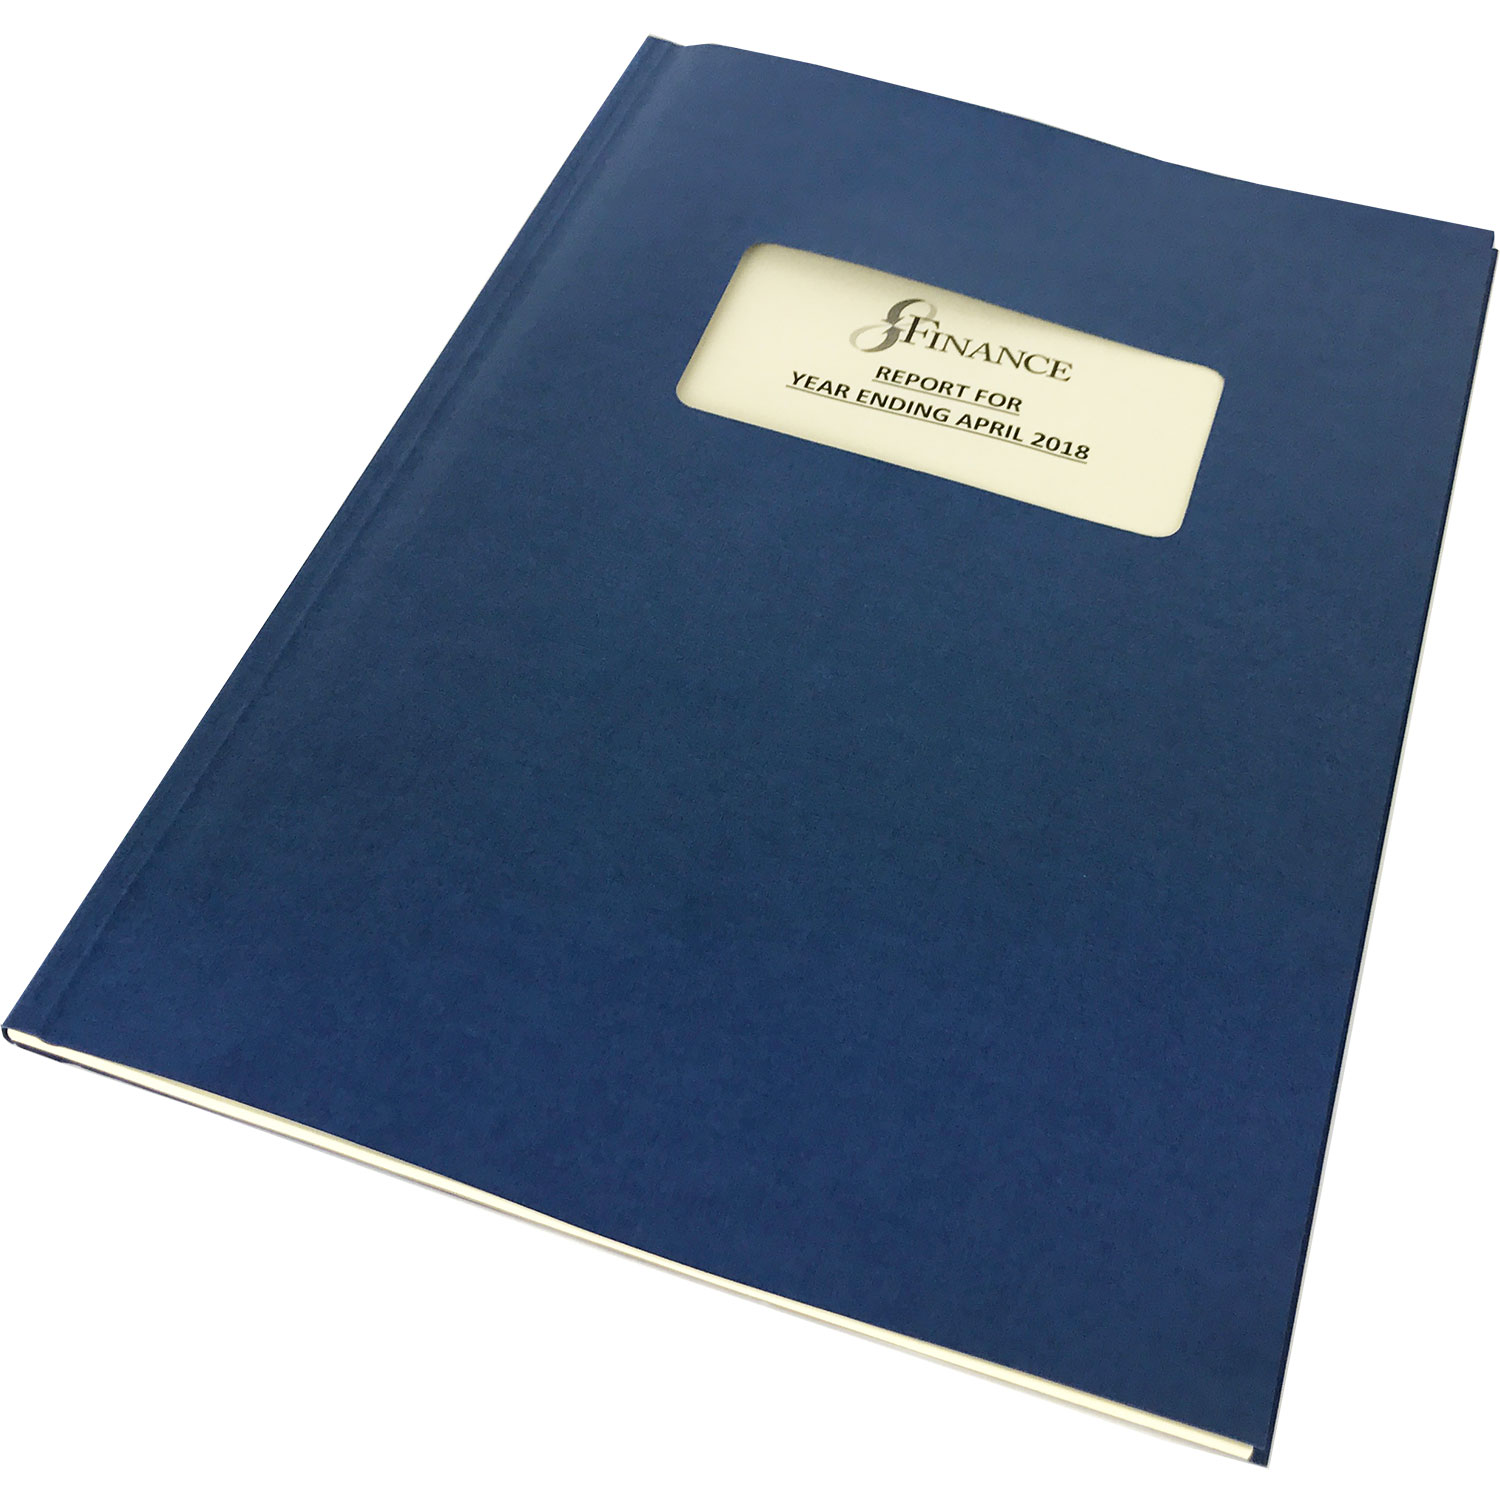 Channelbind A4 Soft-Window Cut-Out Binding Covers - Blue (50)